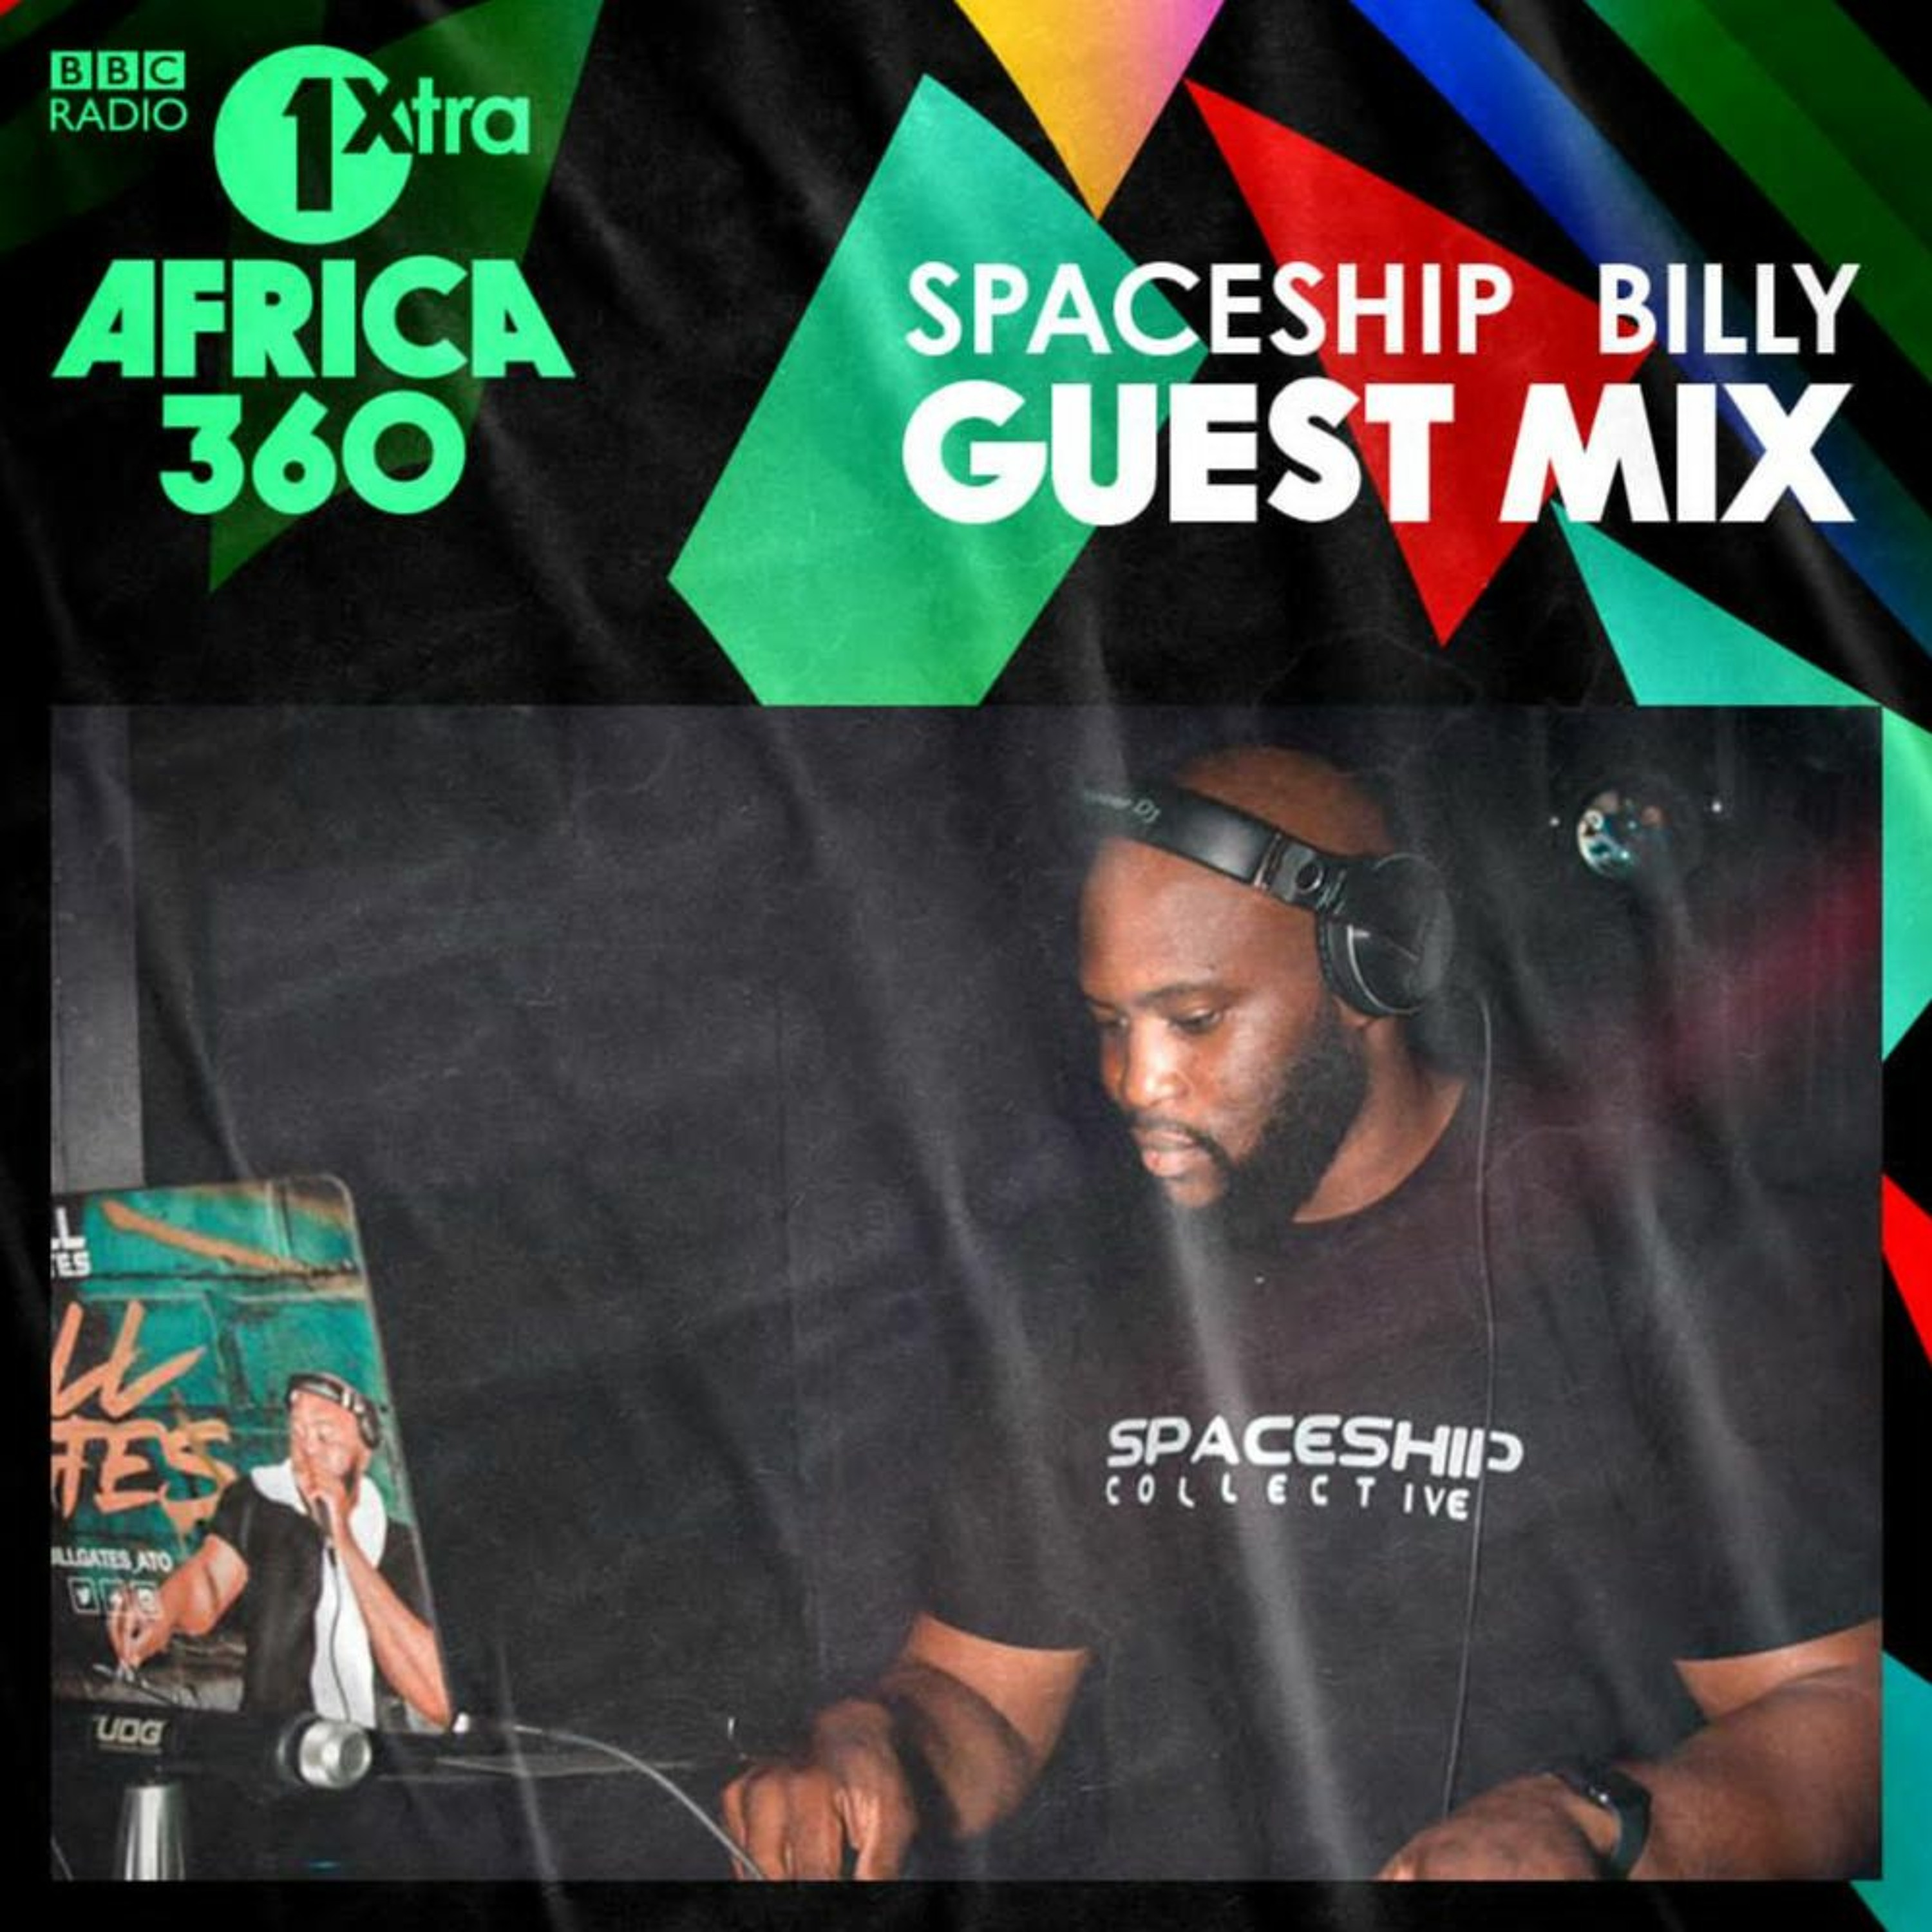 BBC 1xtra Africa 360 Guest Mix by Spaceship Billy